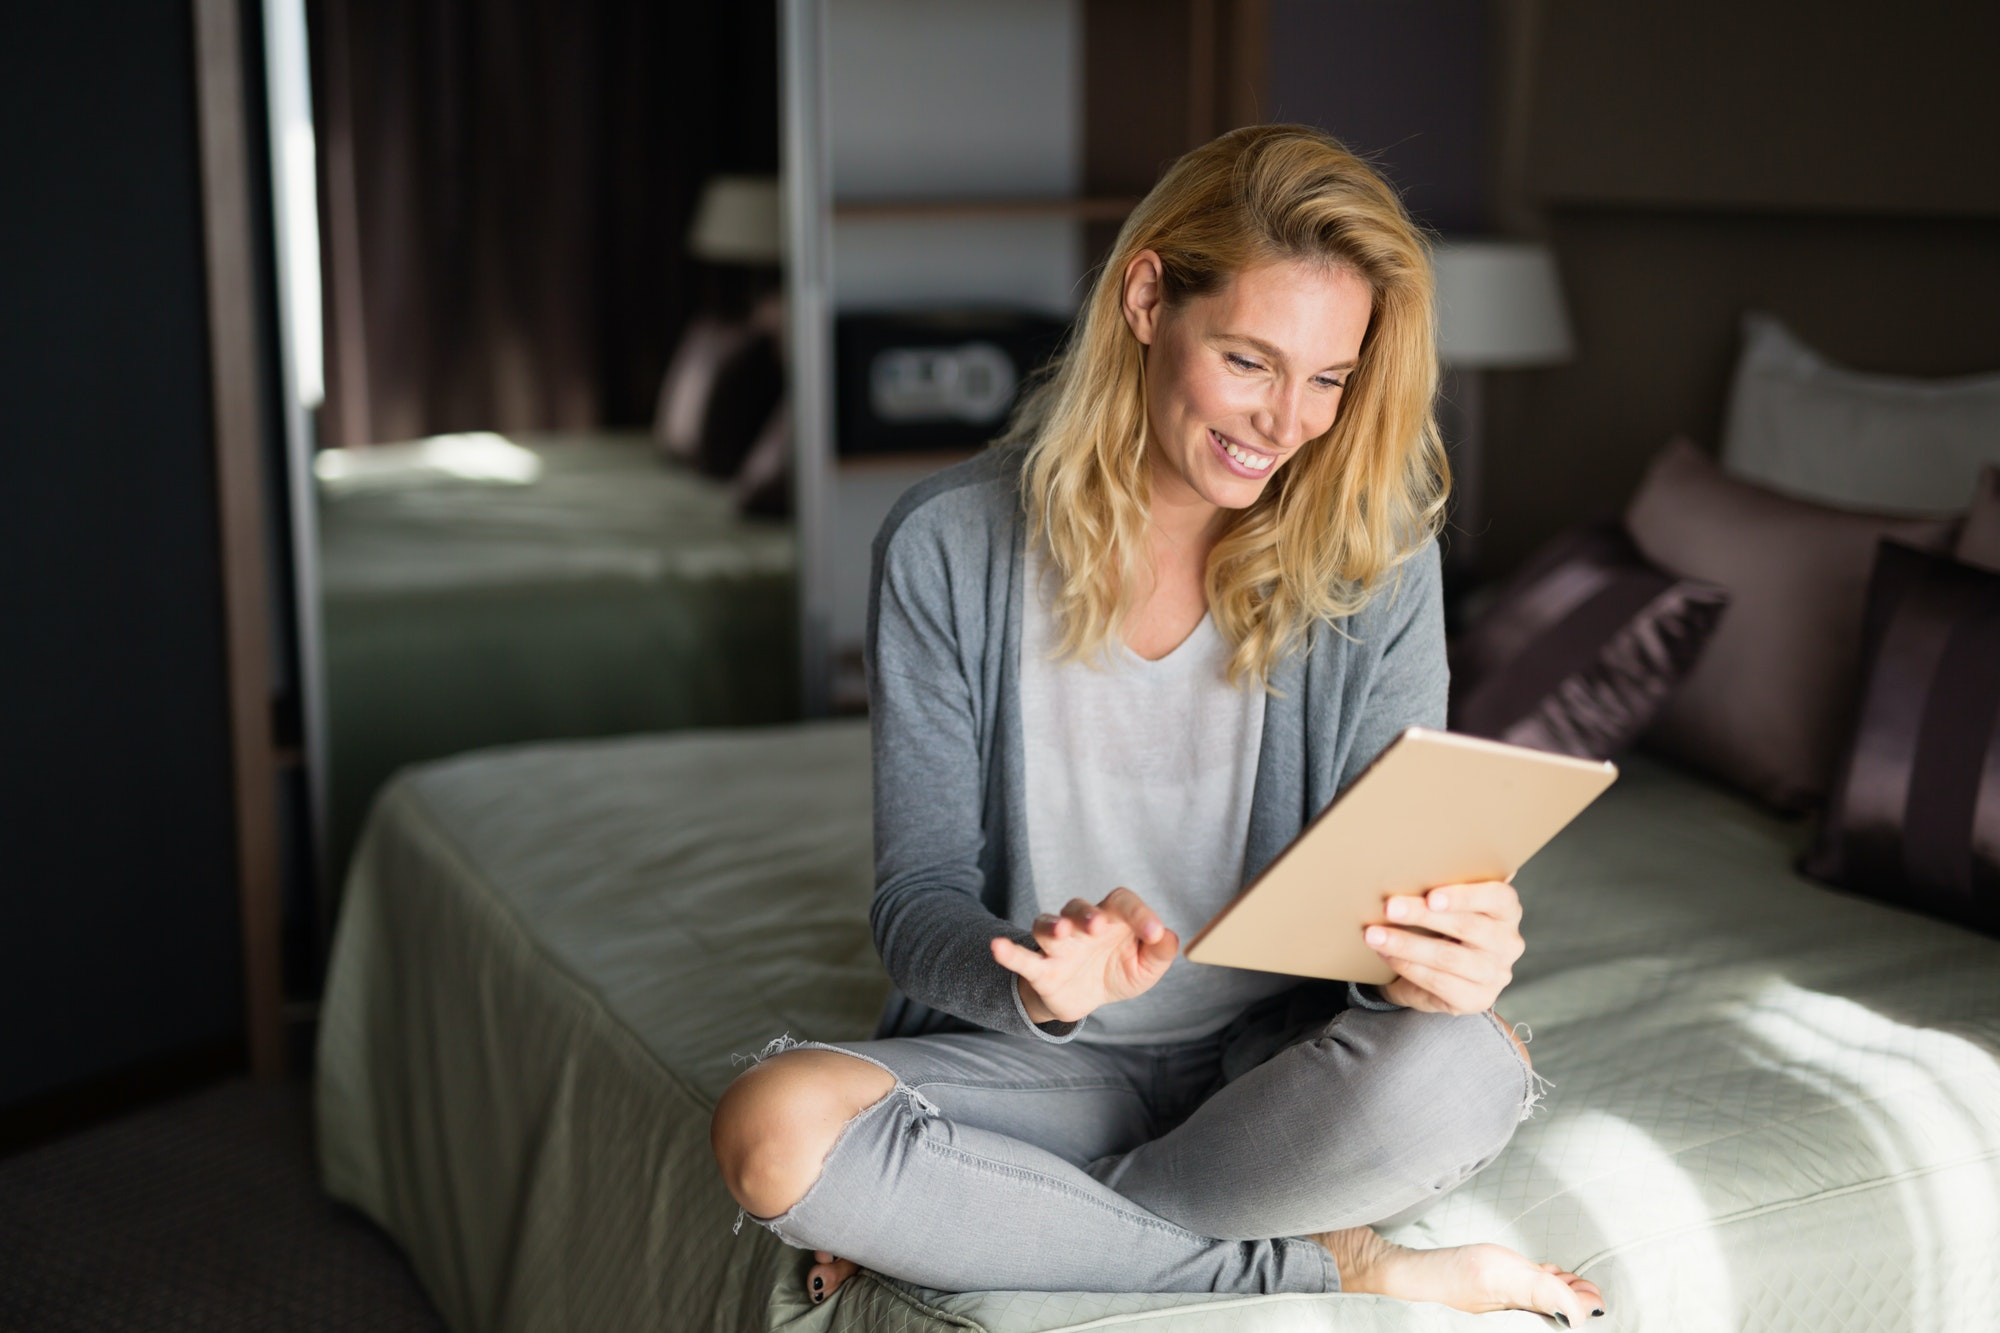 Blond woman using tablet